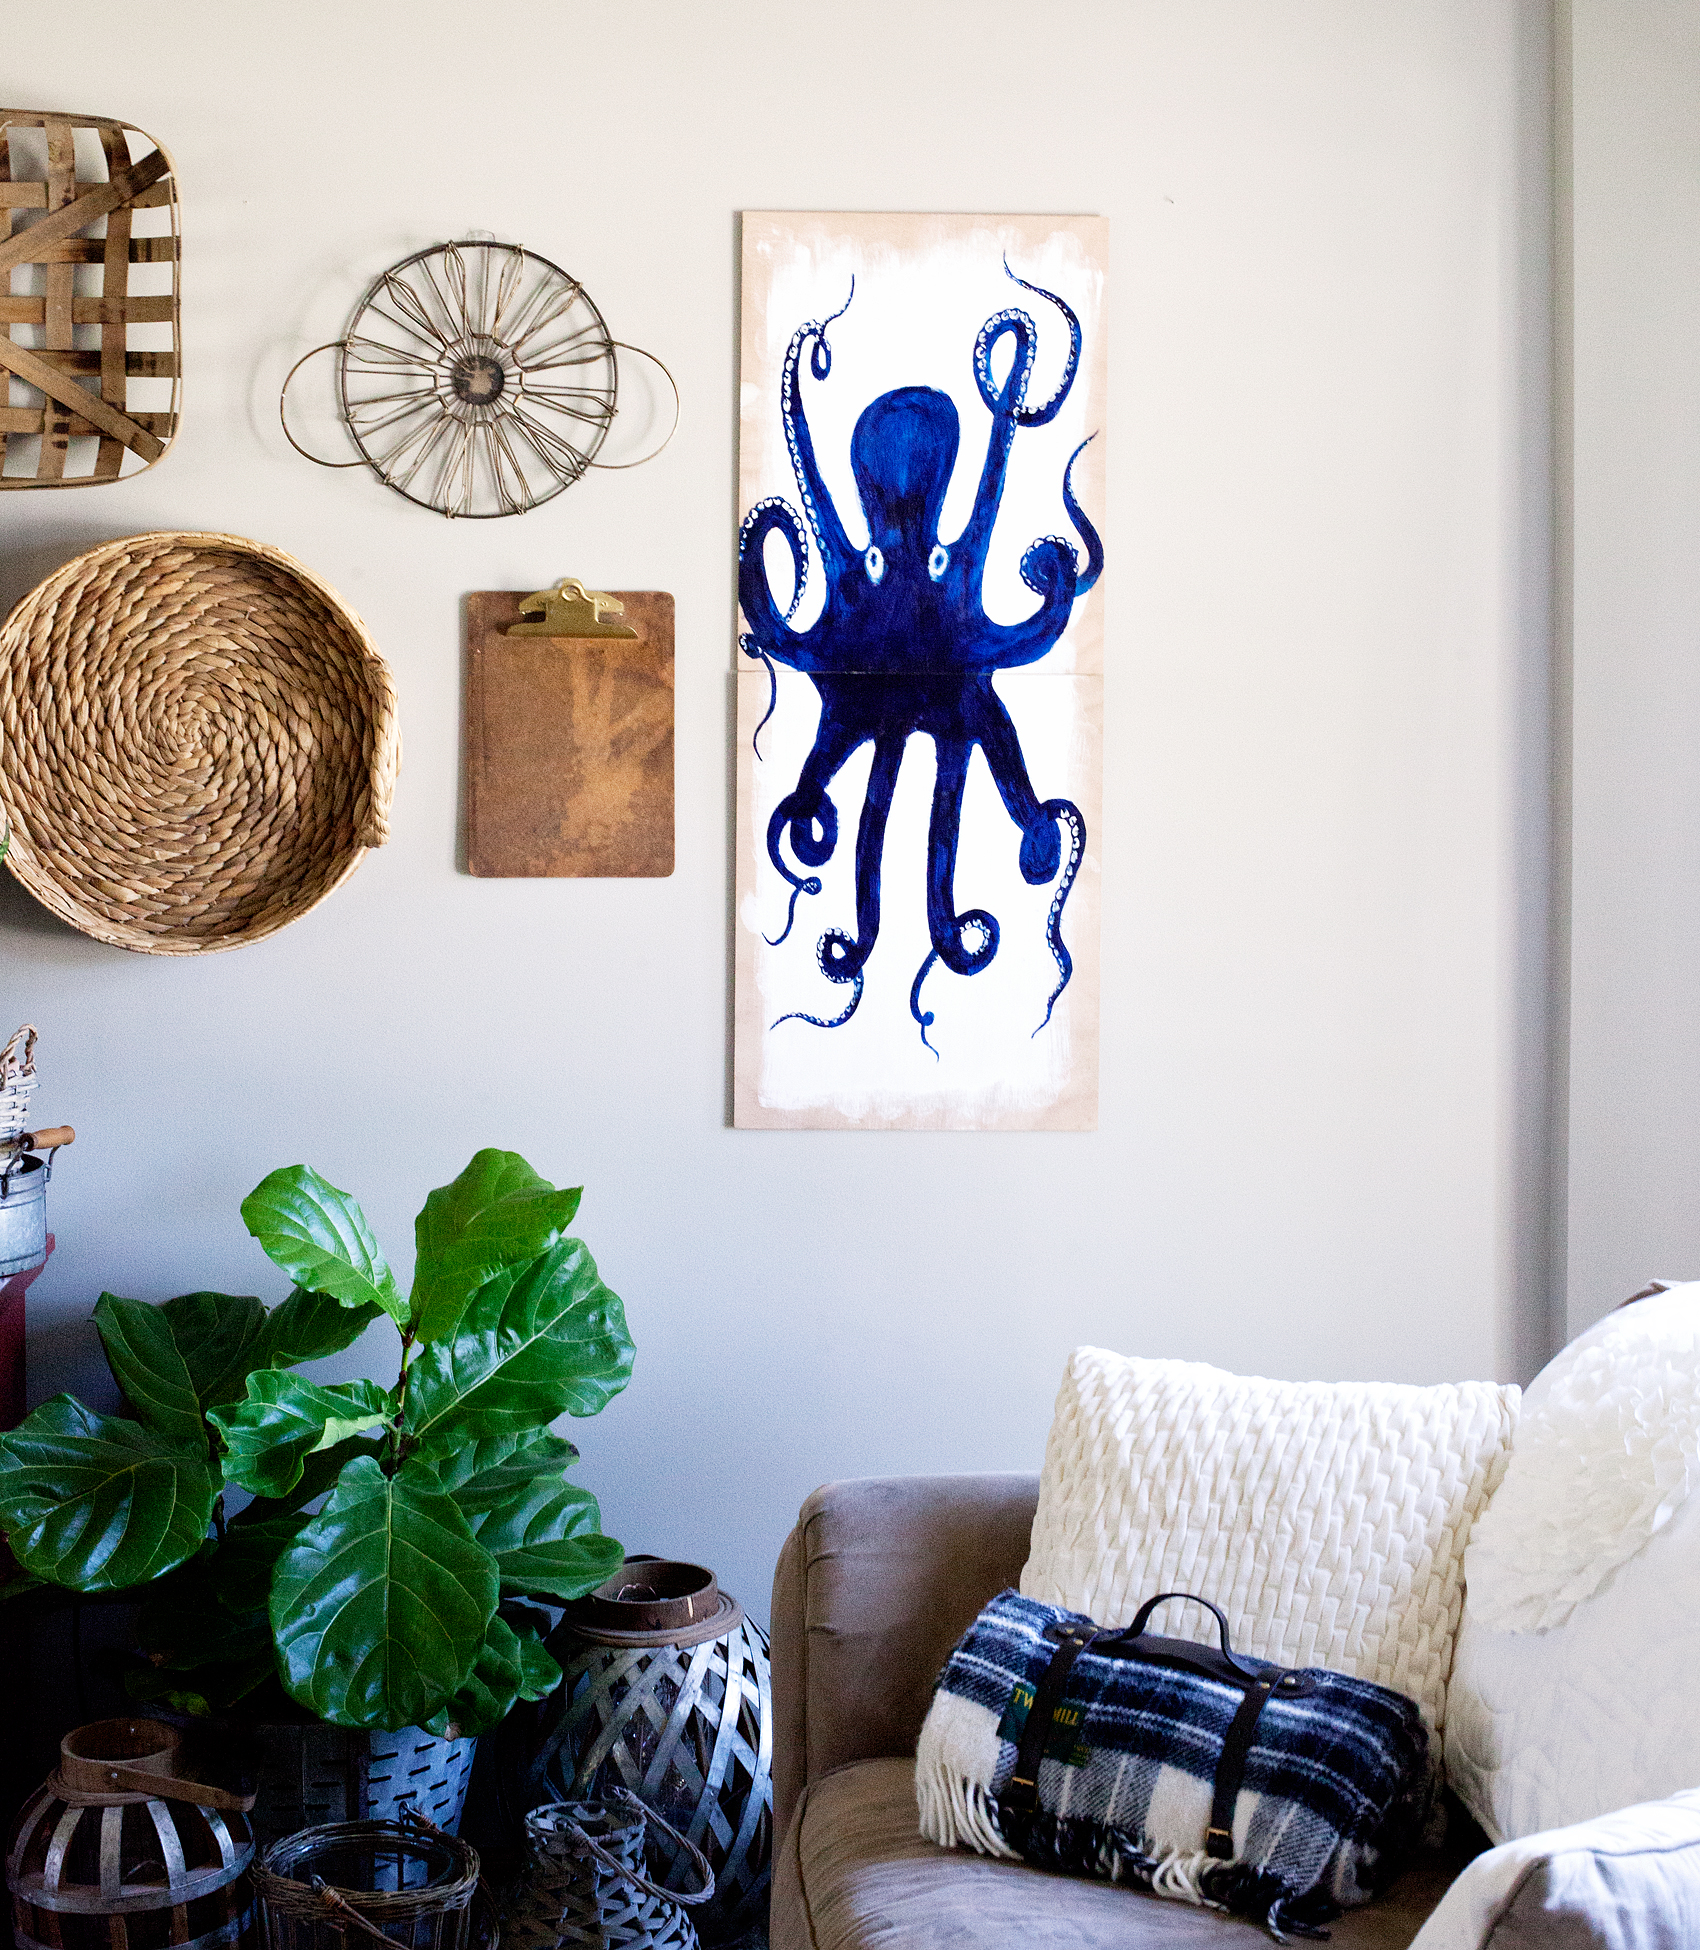 Create A Simple DIY Octopus Wall Art Piece With The NEW DecoArt Americana®  Premium Artist Acrylics Found At Michaels.